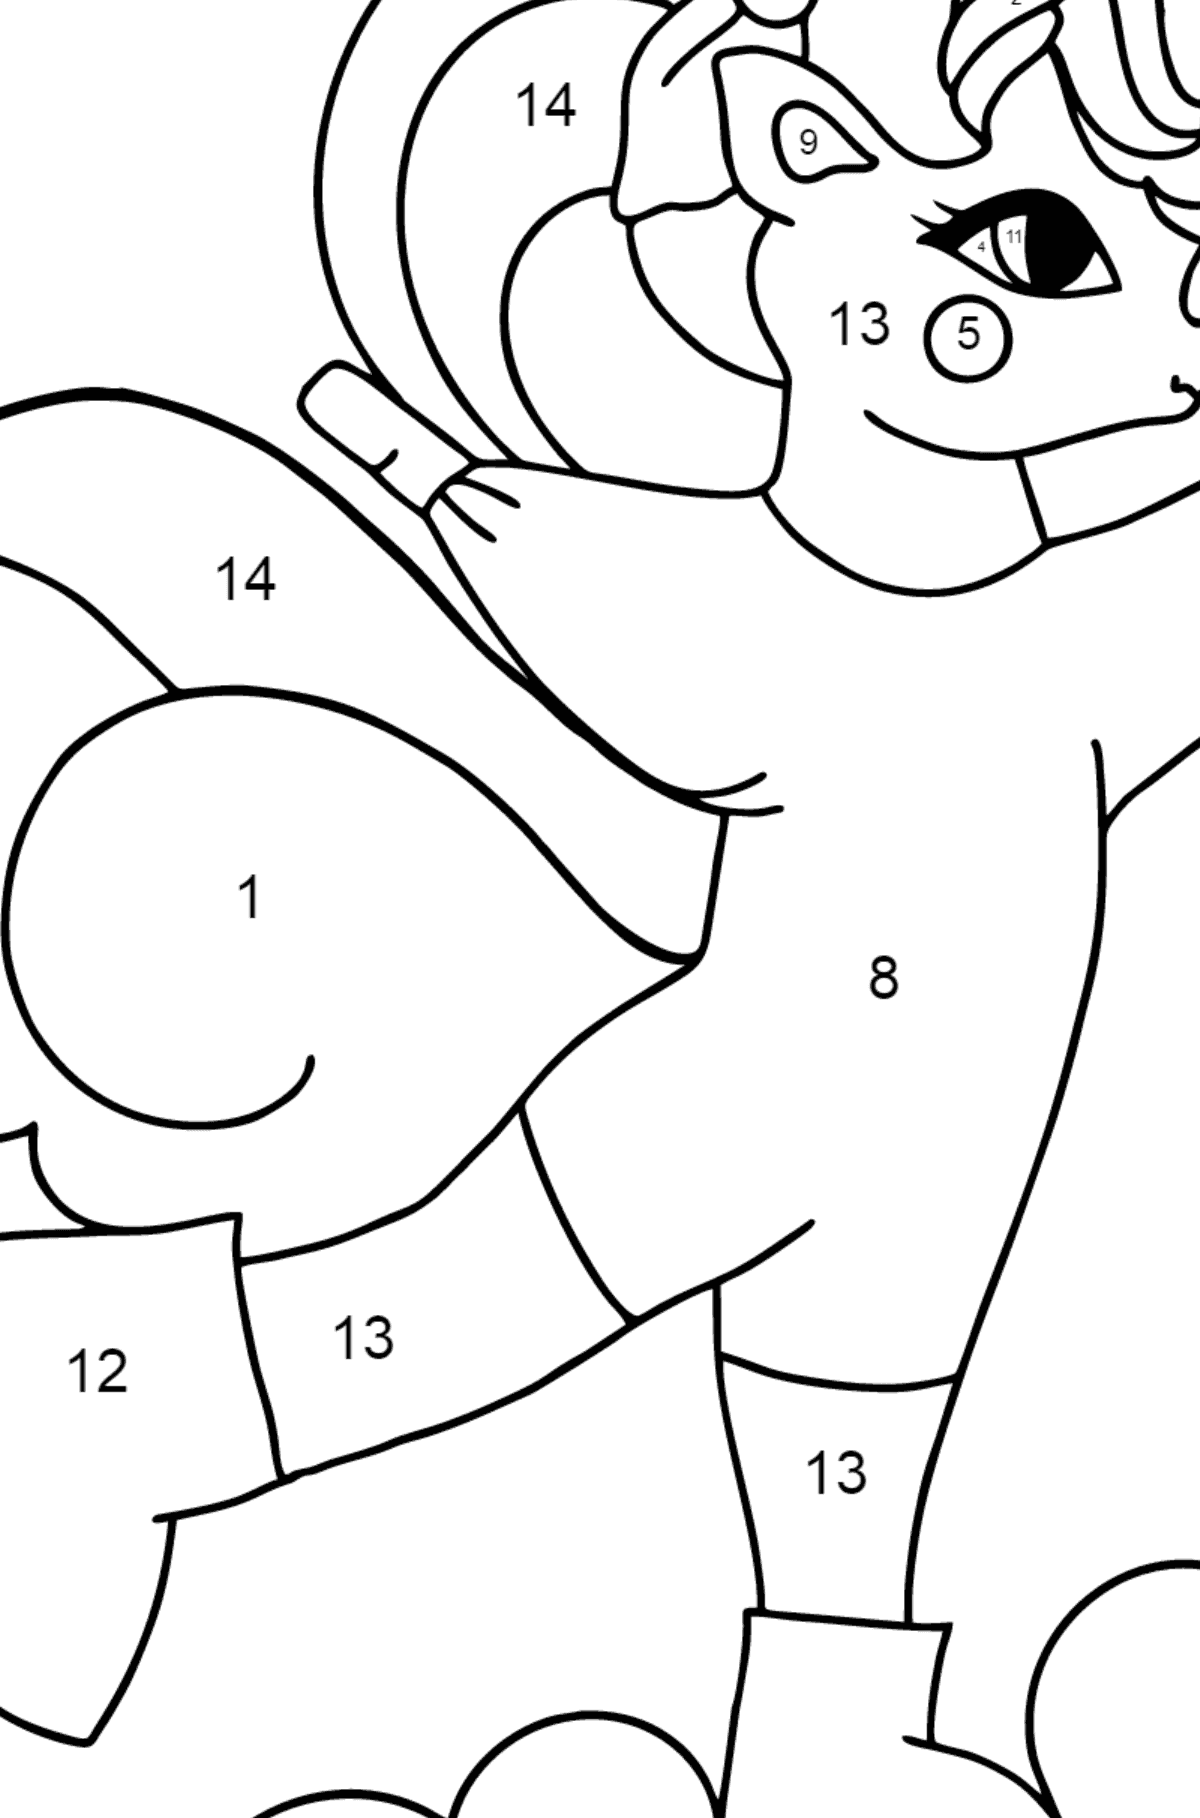 Coloring Page - A Unicorn on Skates for Kids  - Color by Number